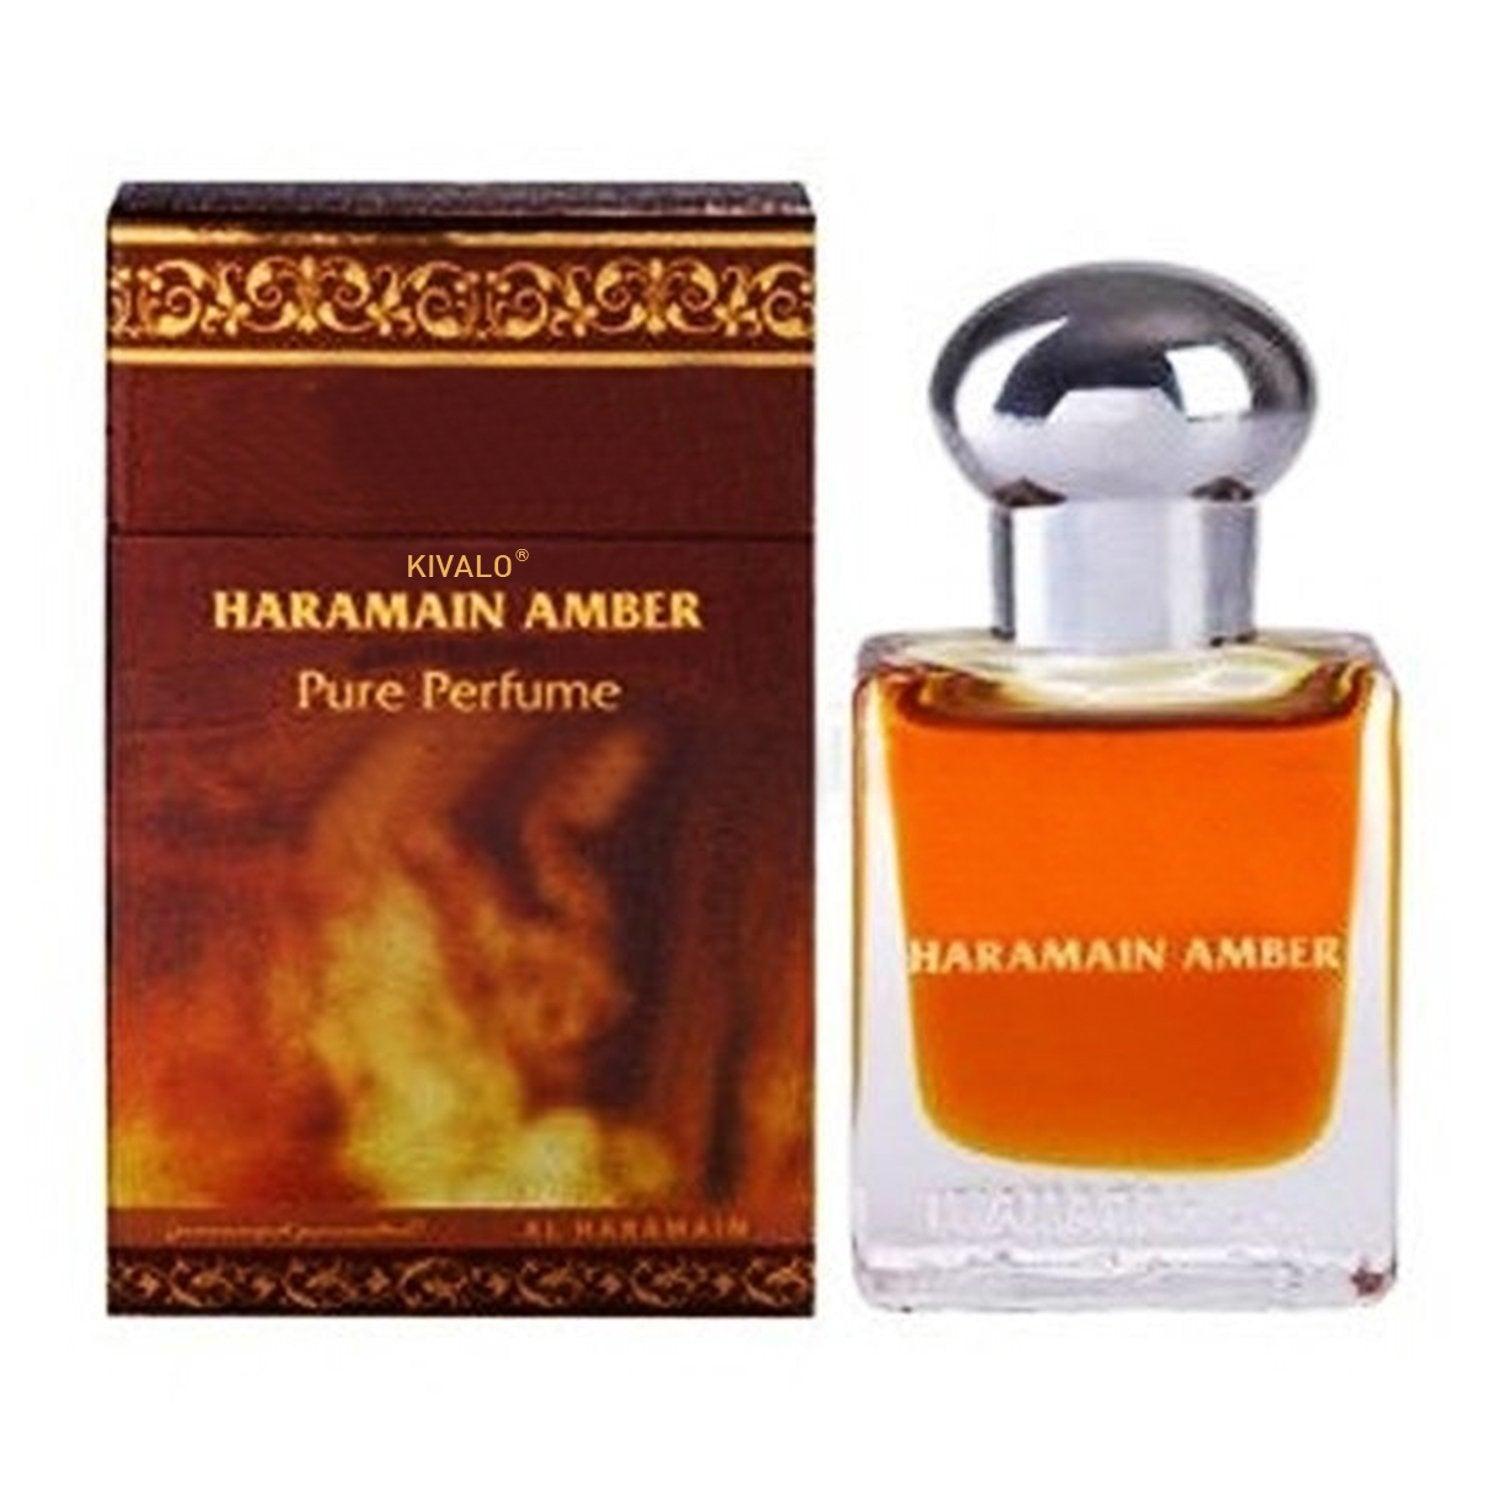 Al Haramain Amber & Musk Pack of 2 Attar - 2 x 15ml